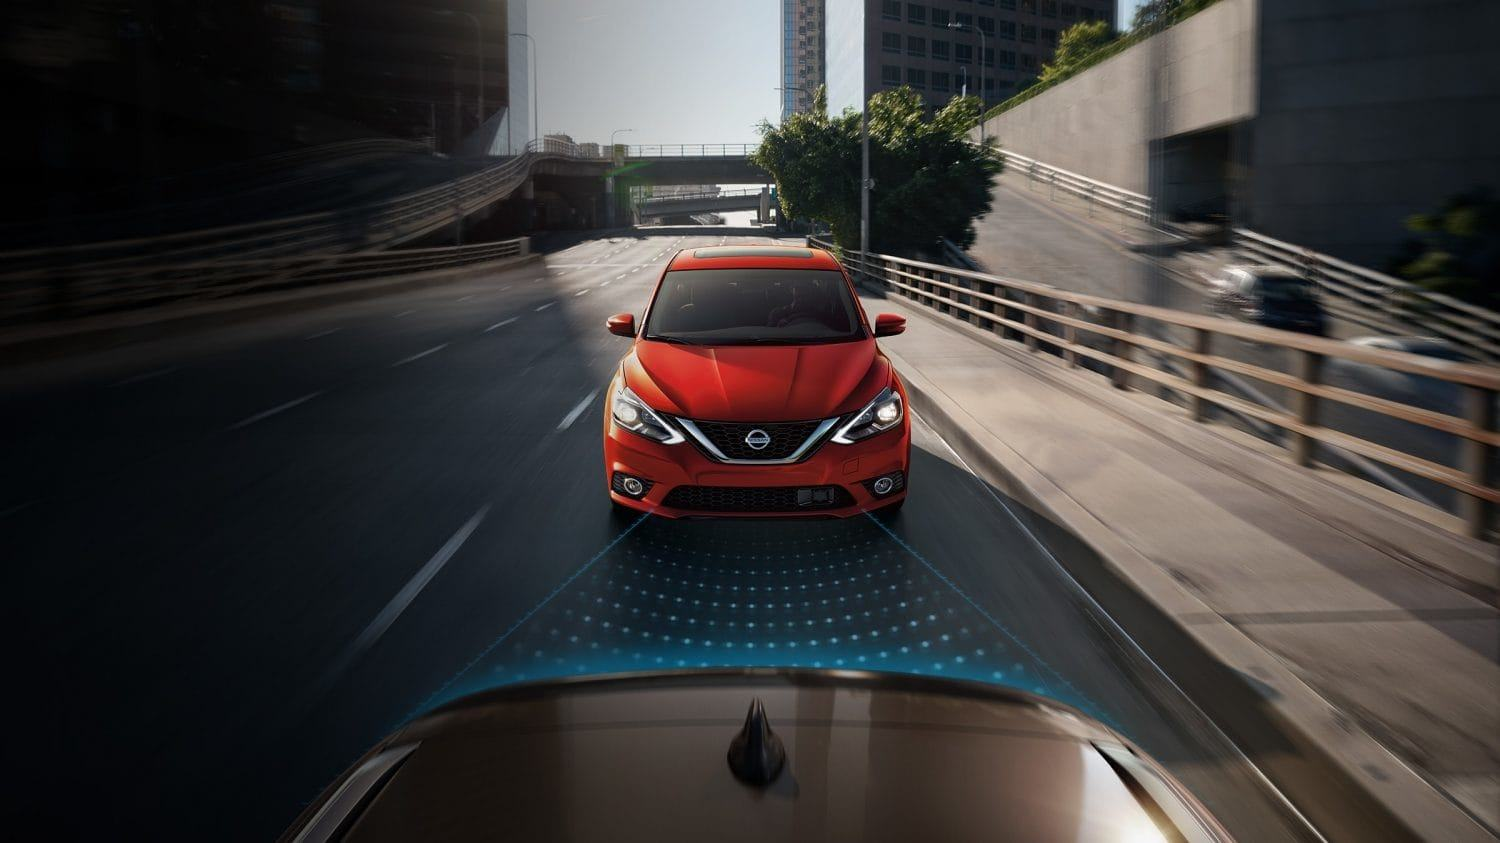 New 2019 Nissan Sentra Automatic Emergency Braking